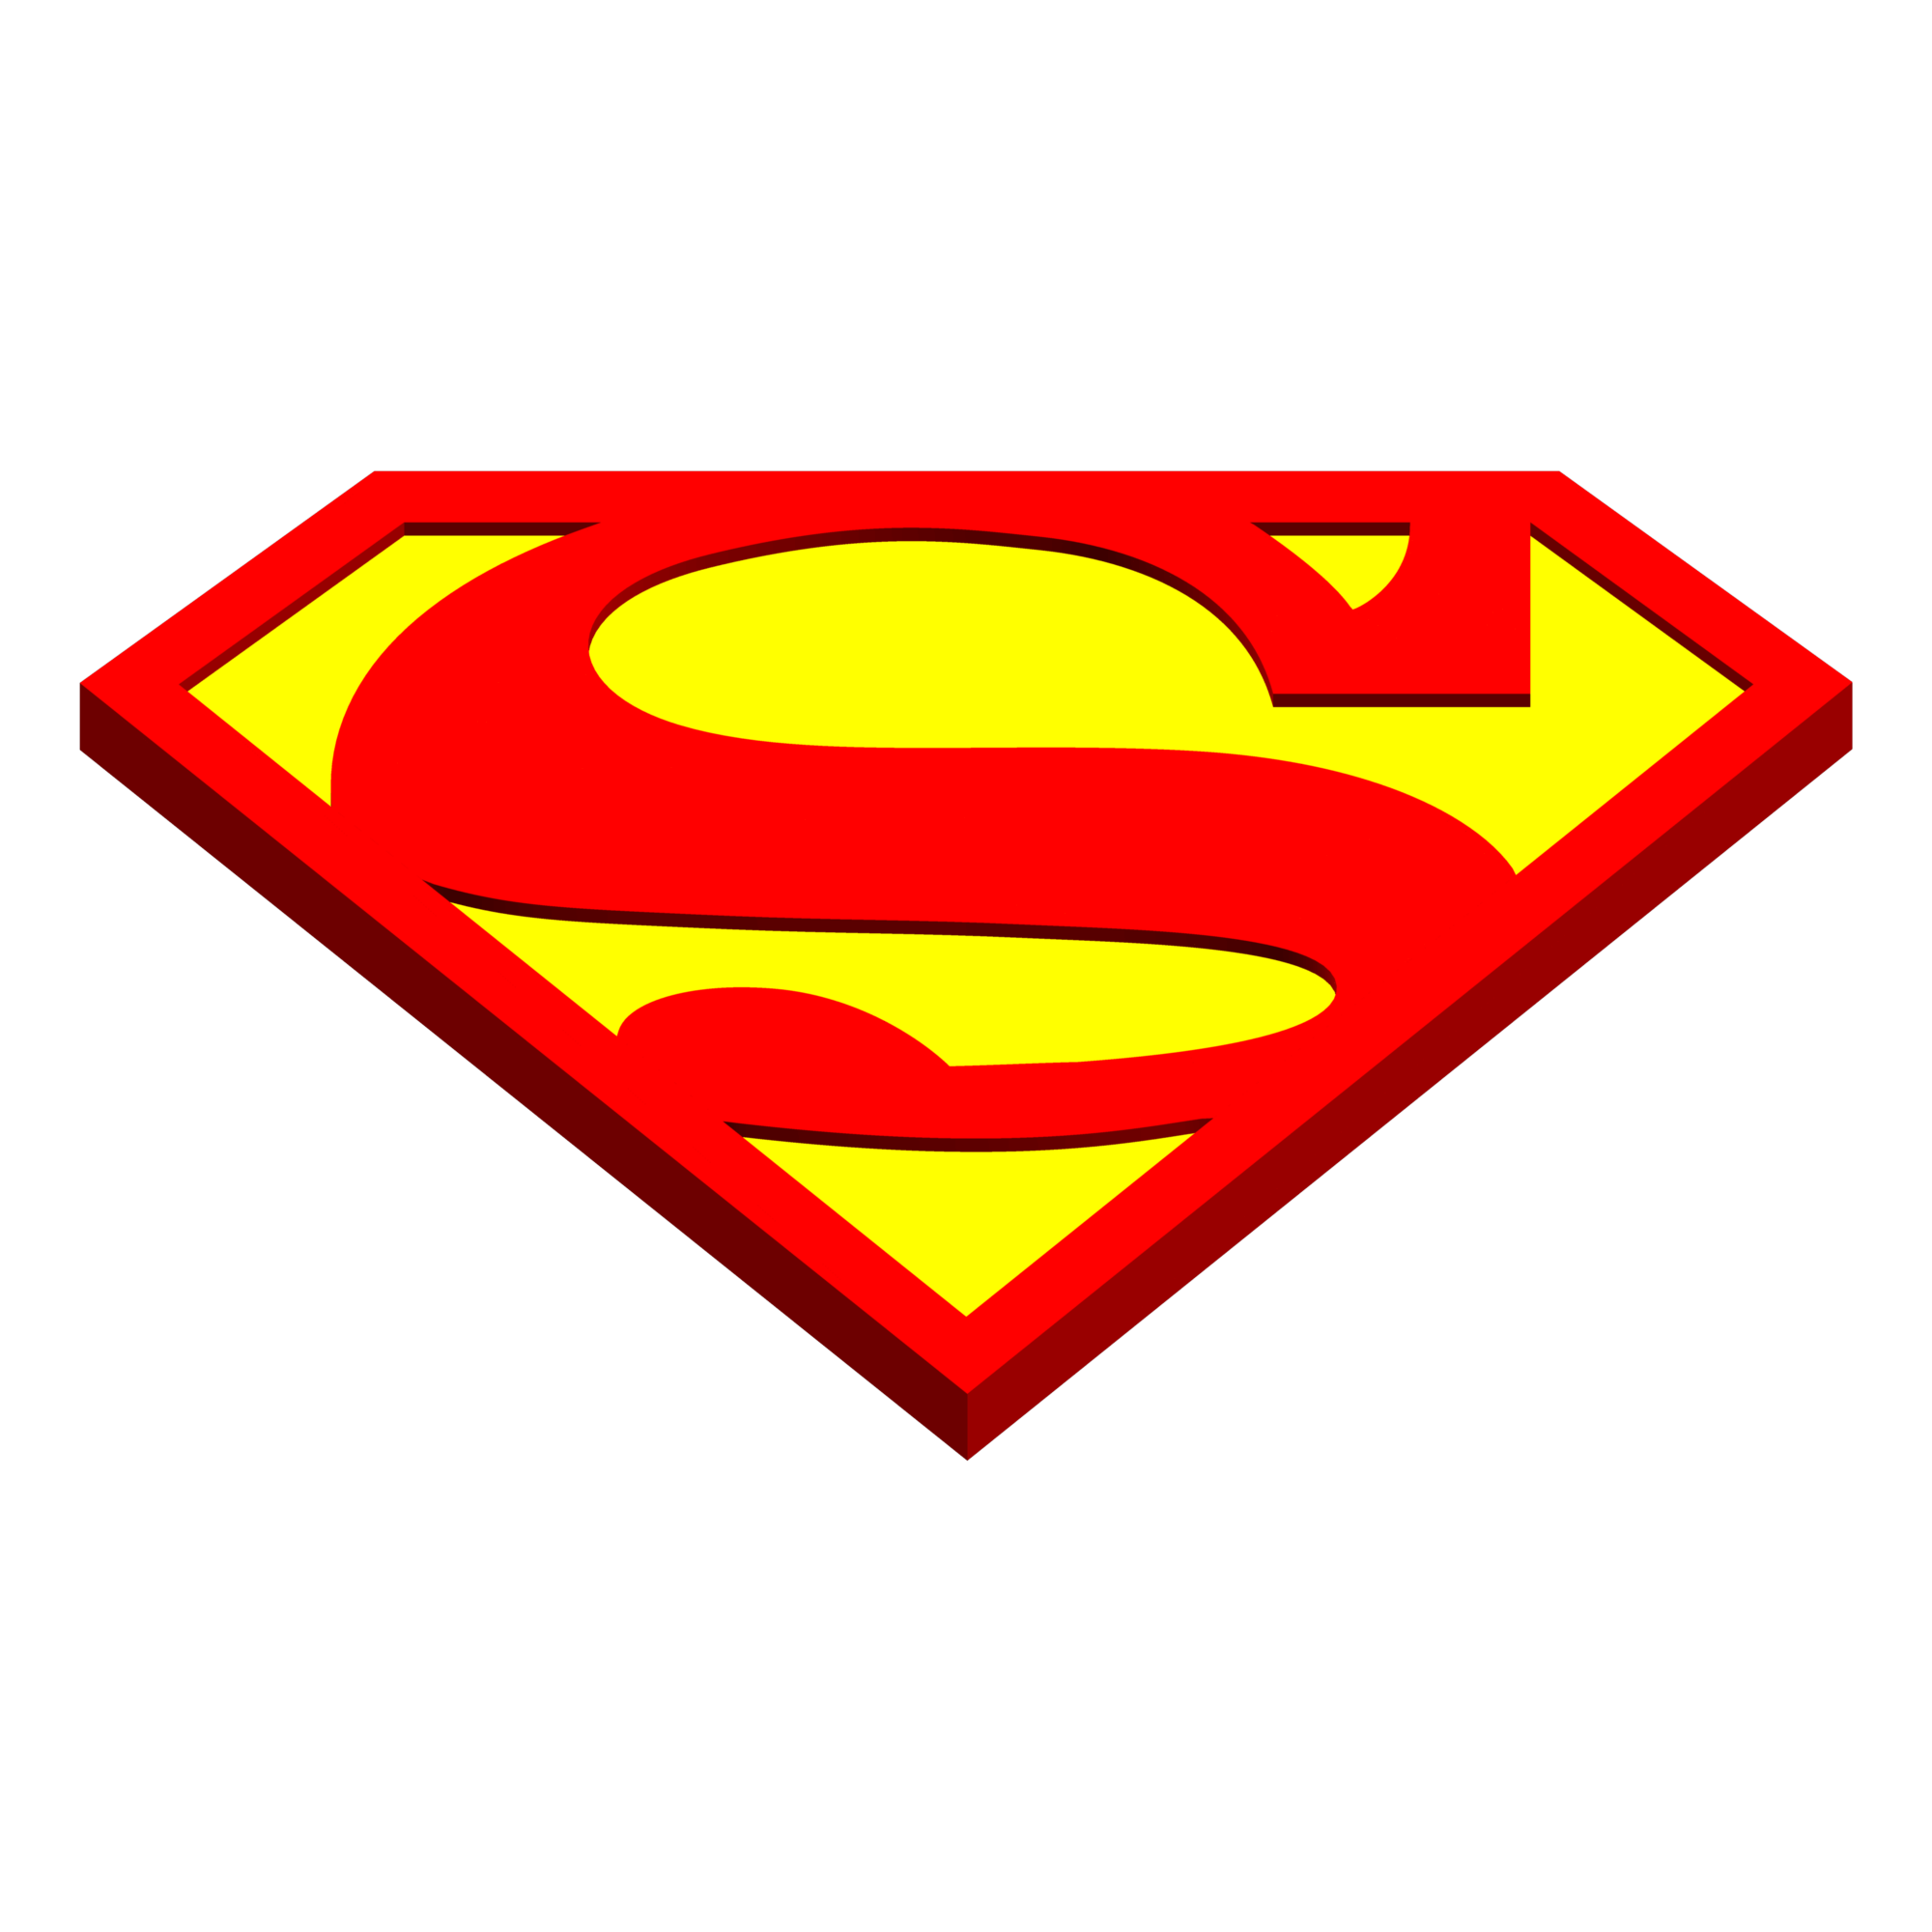 superman logo png cartoon rh clipart info superman logo png format superman logo png download